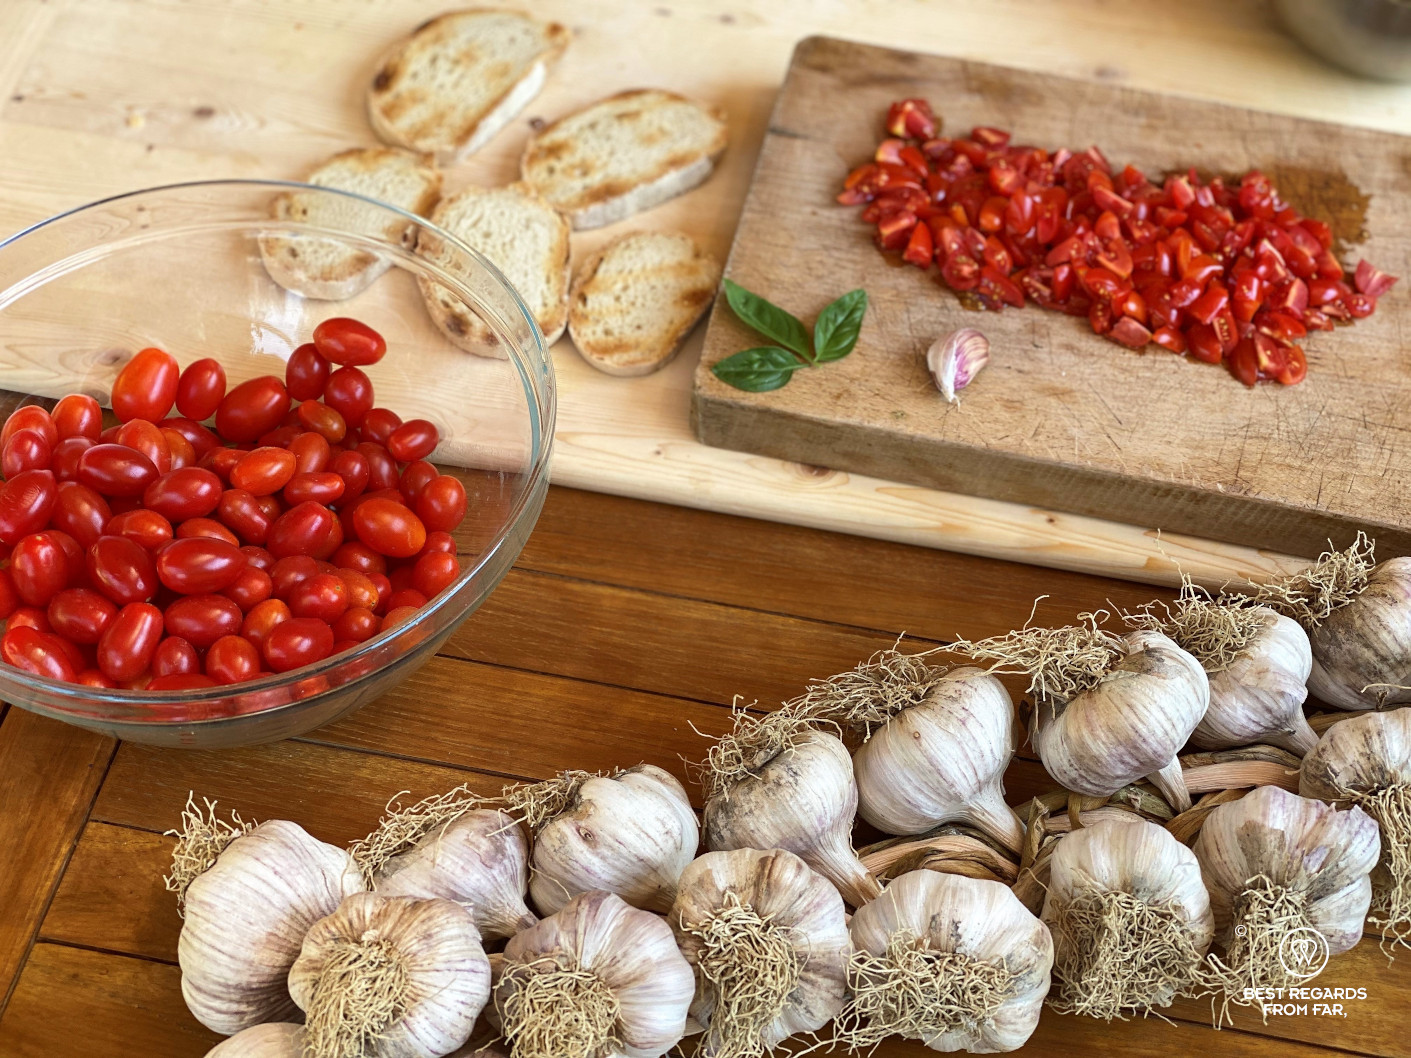 Cherry tomatos, garlic and toasted bread on a wooden board